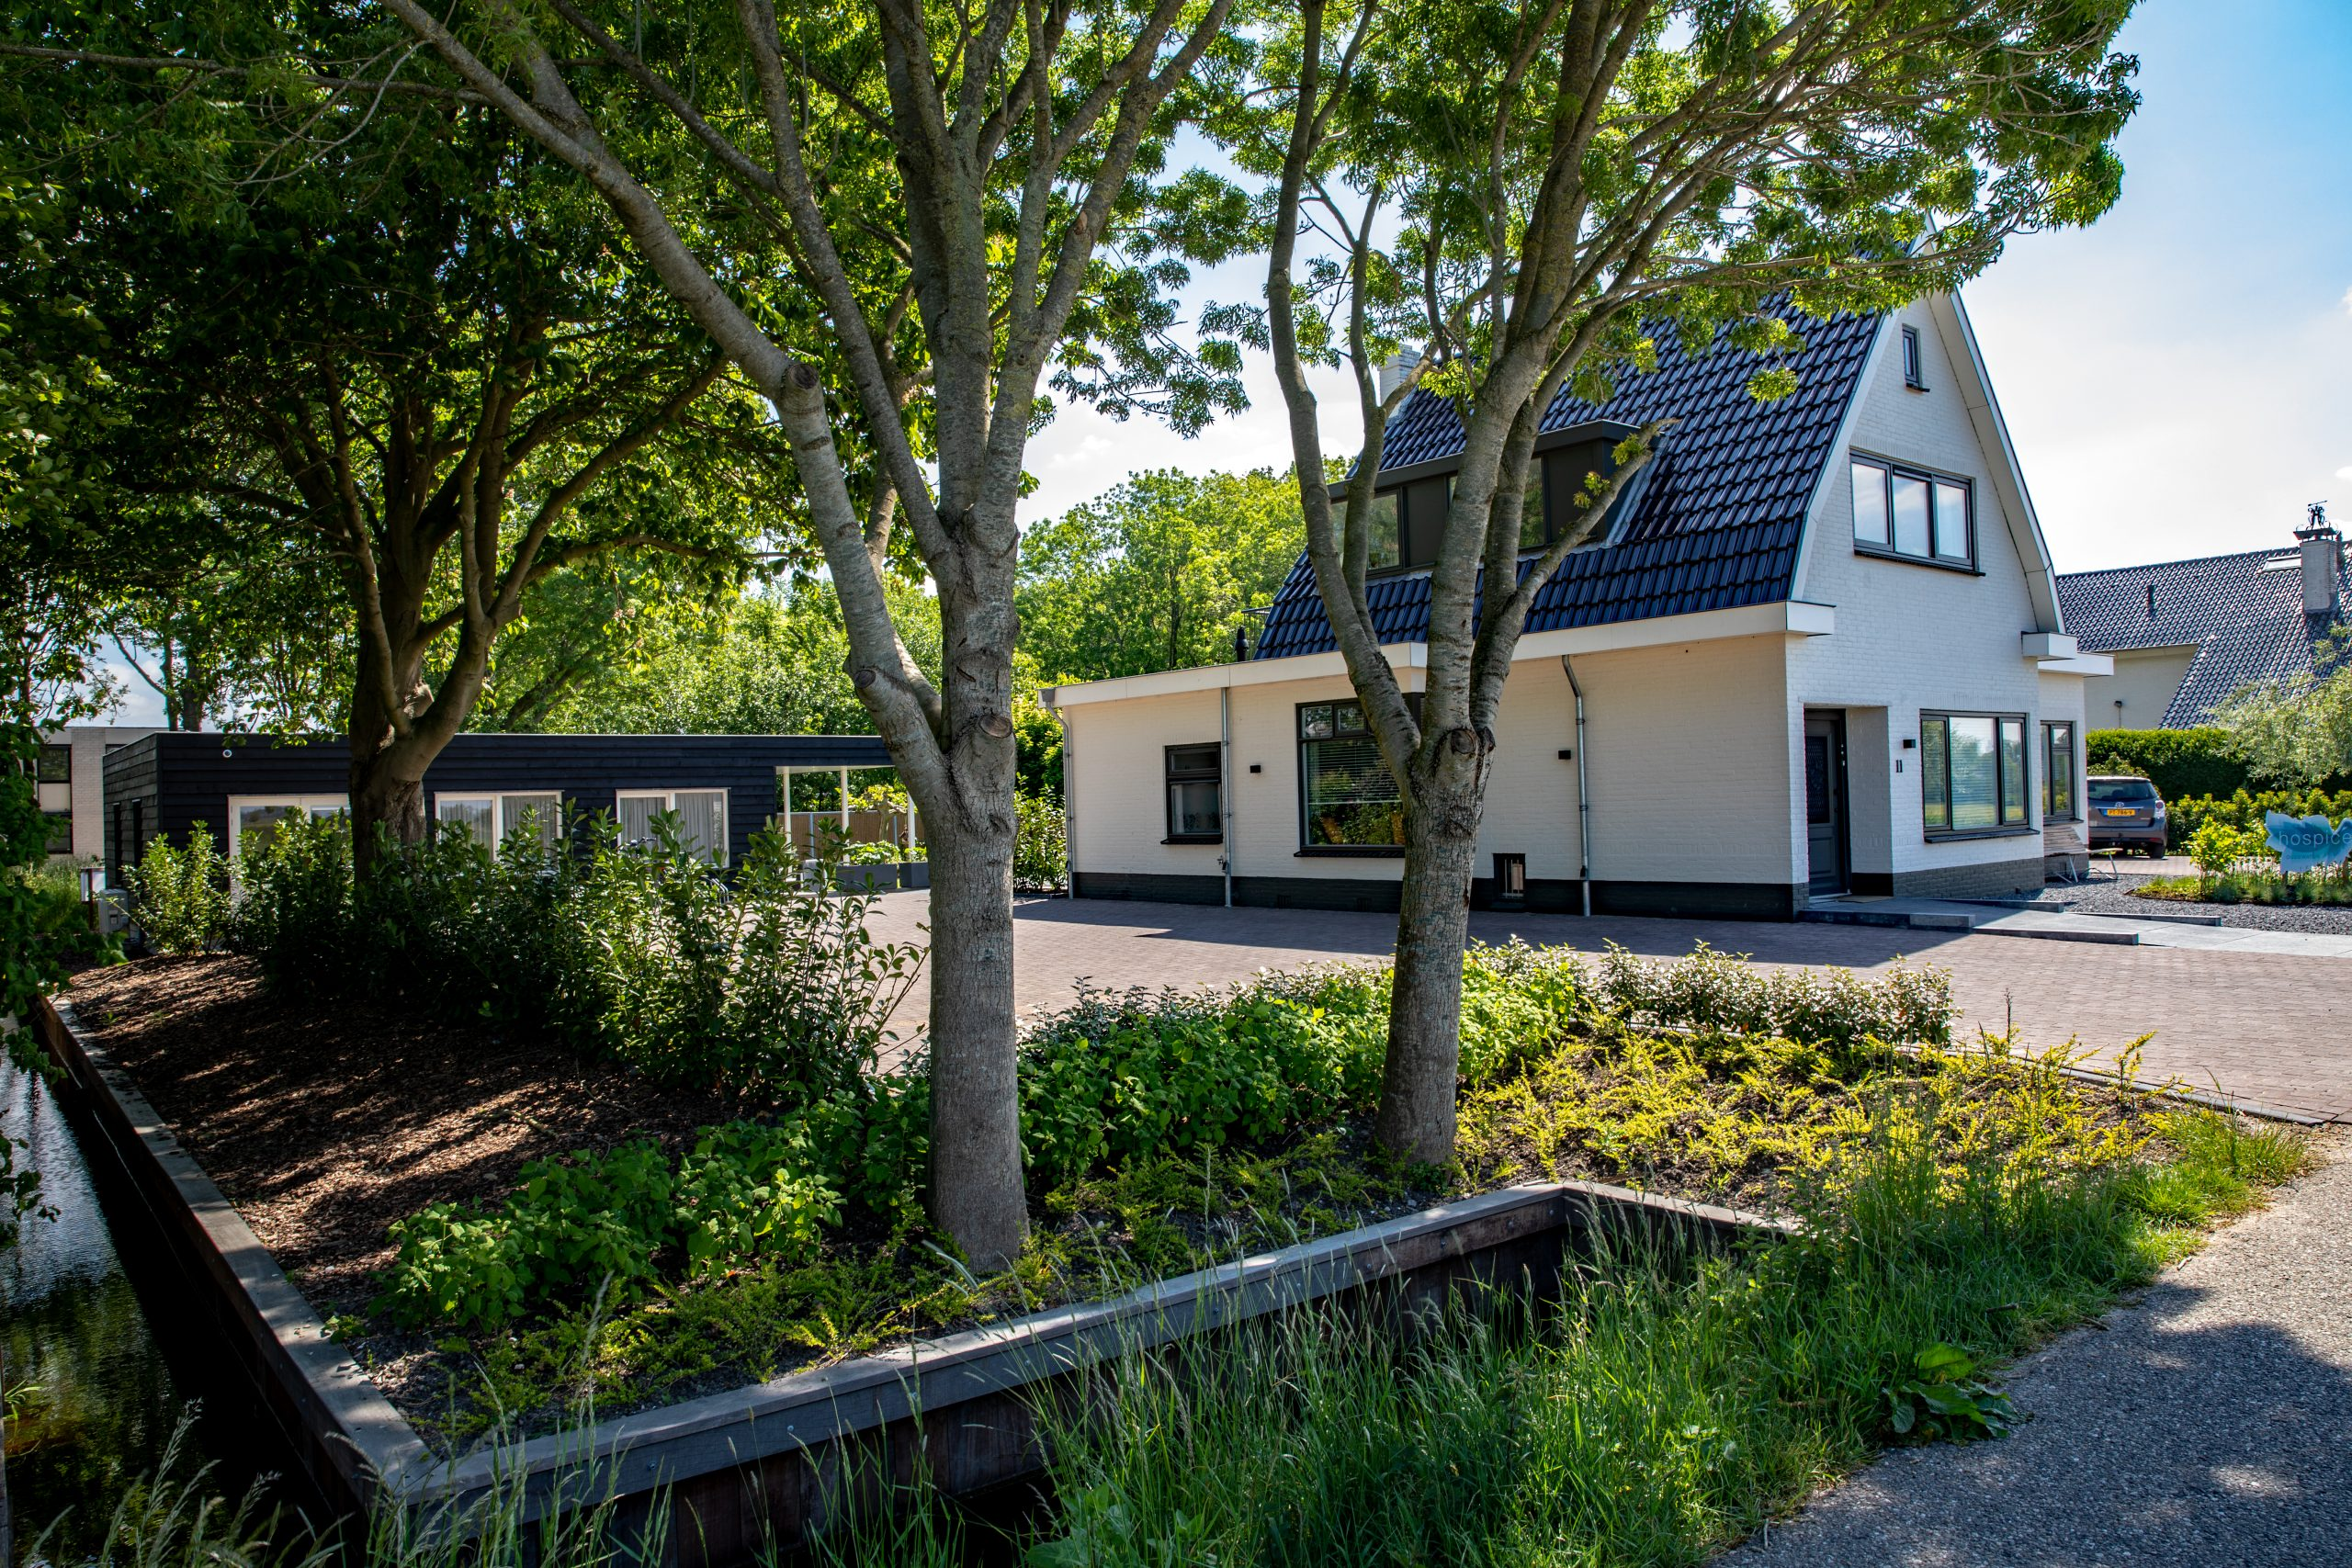 Hospice Oudewater